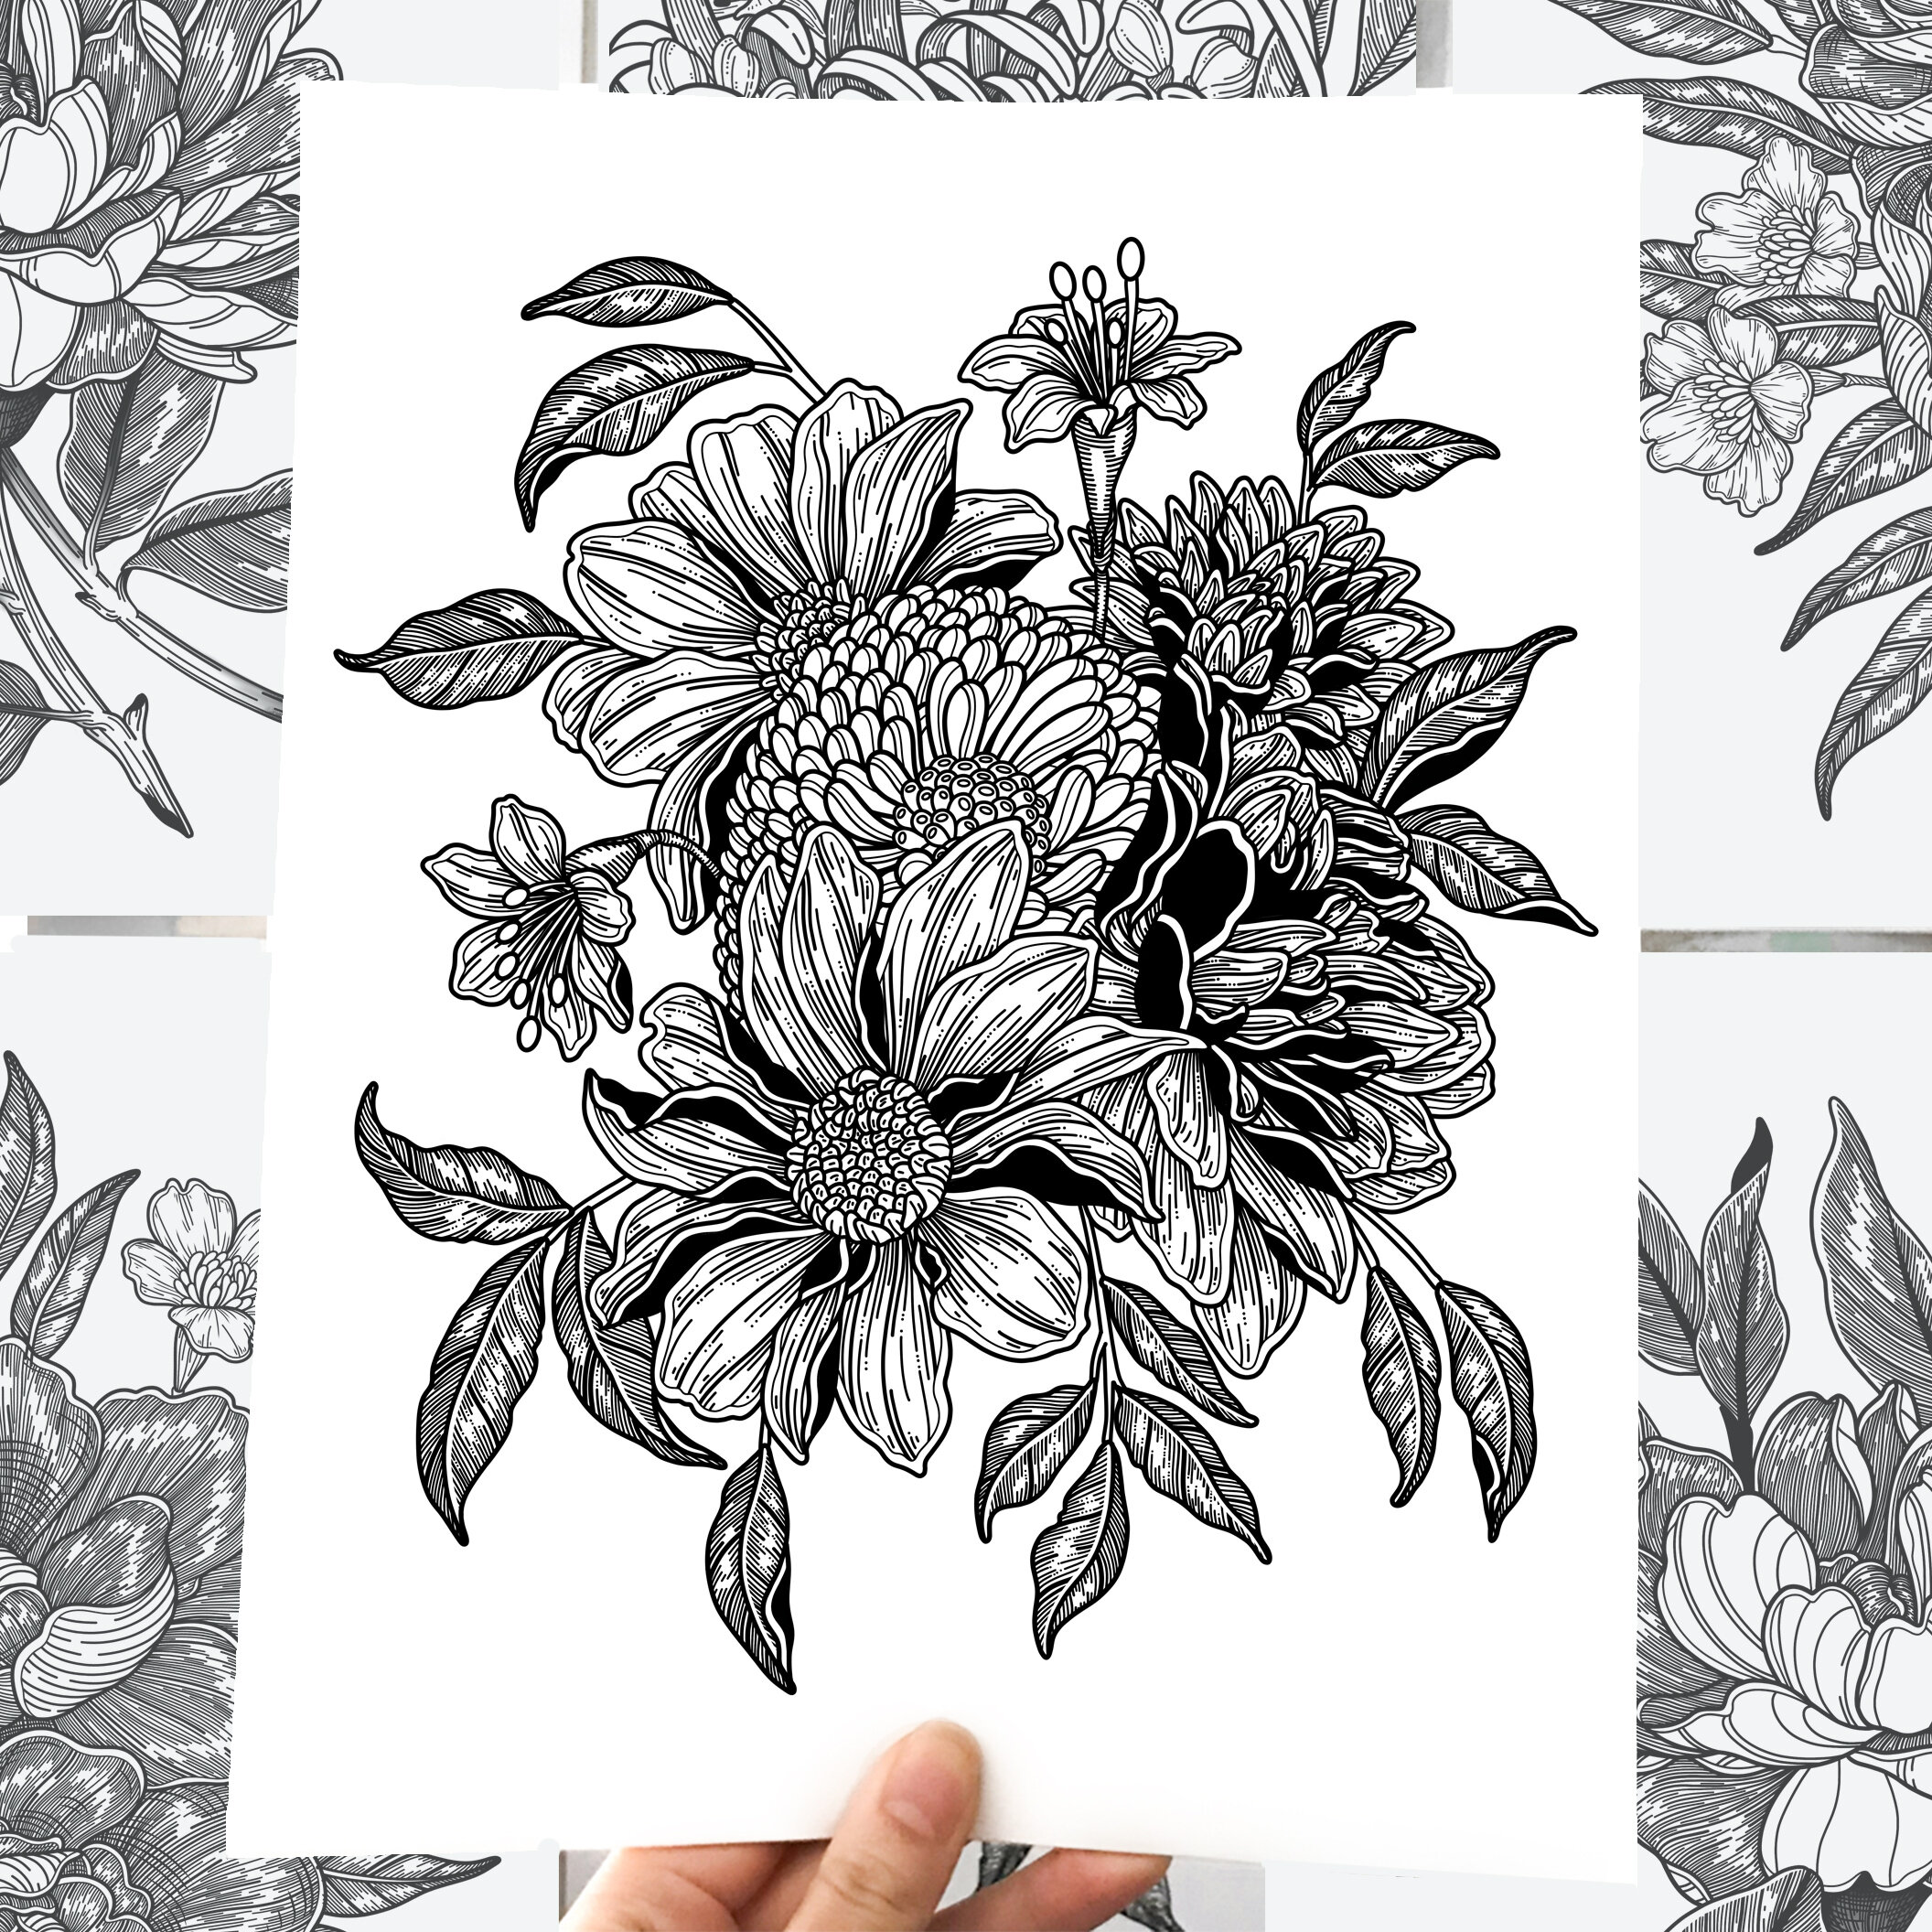 Memento FLora - Instead of mourning the felting moments of life, Nestingzone's Memento Flora collection is a series of botanical illustrations drawn to celebrate the beauty of nature.Never fading, never decaying, these drawings are your forever flowers.